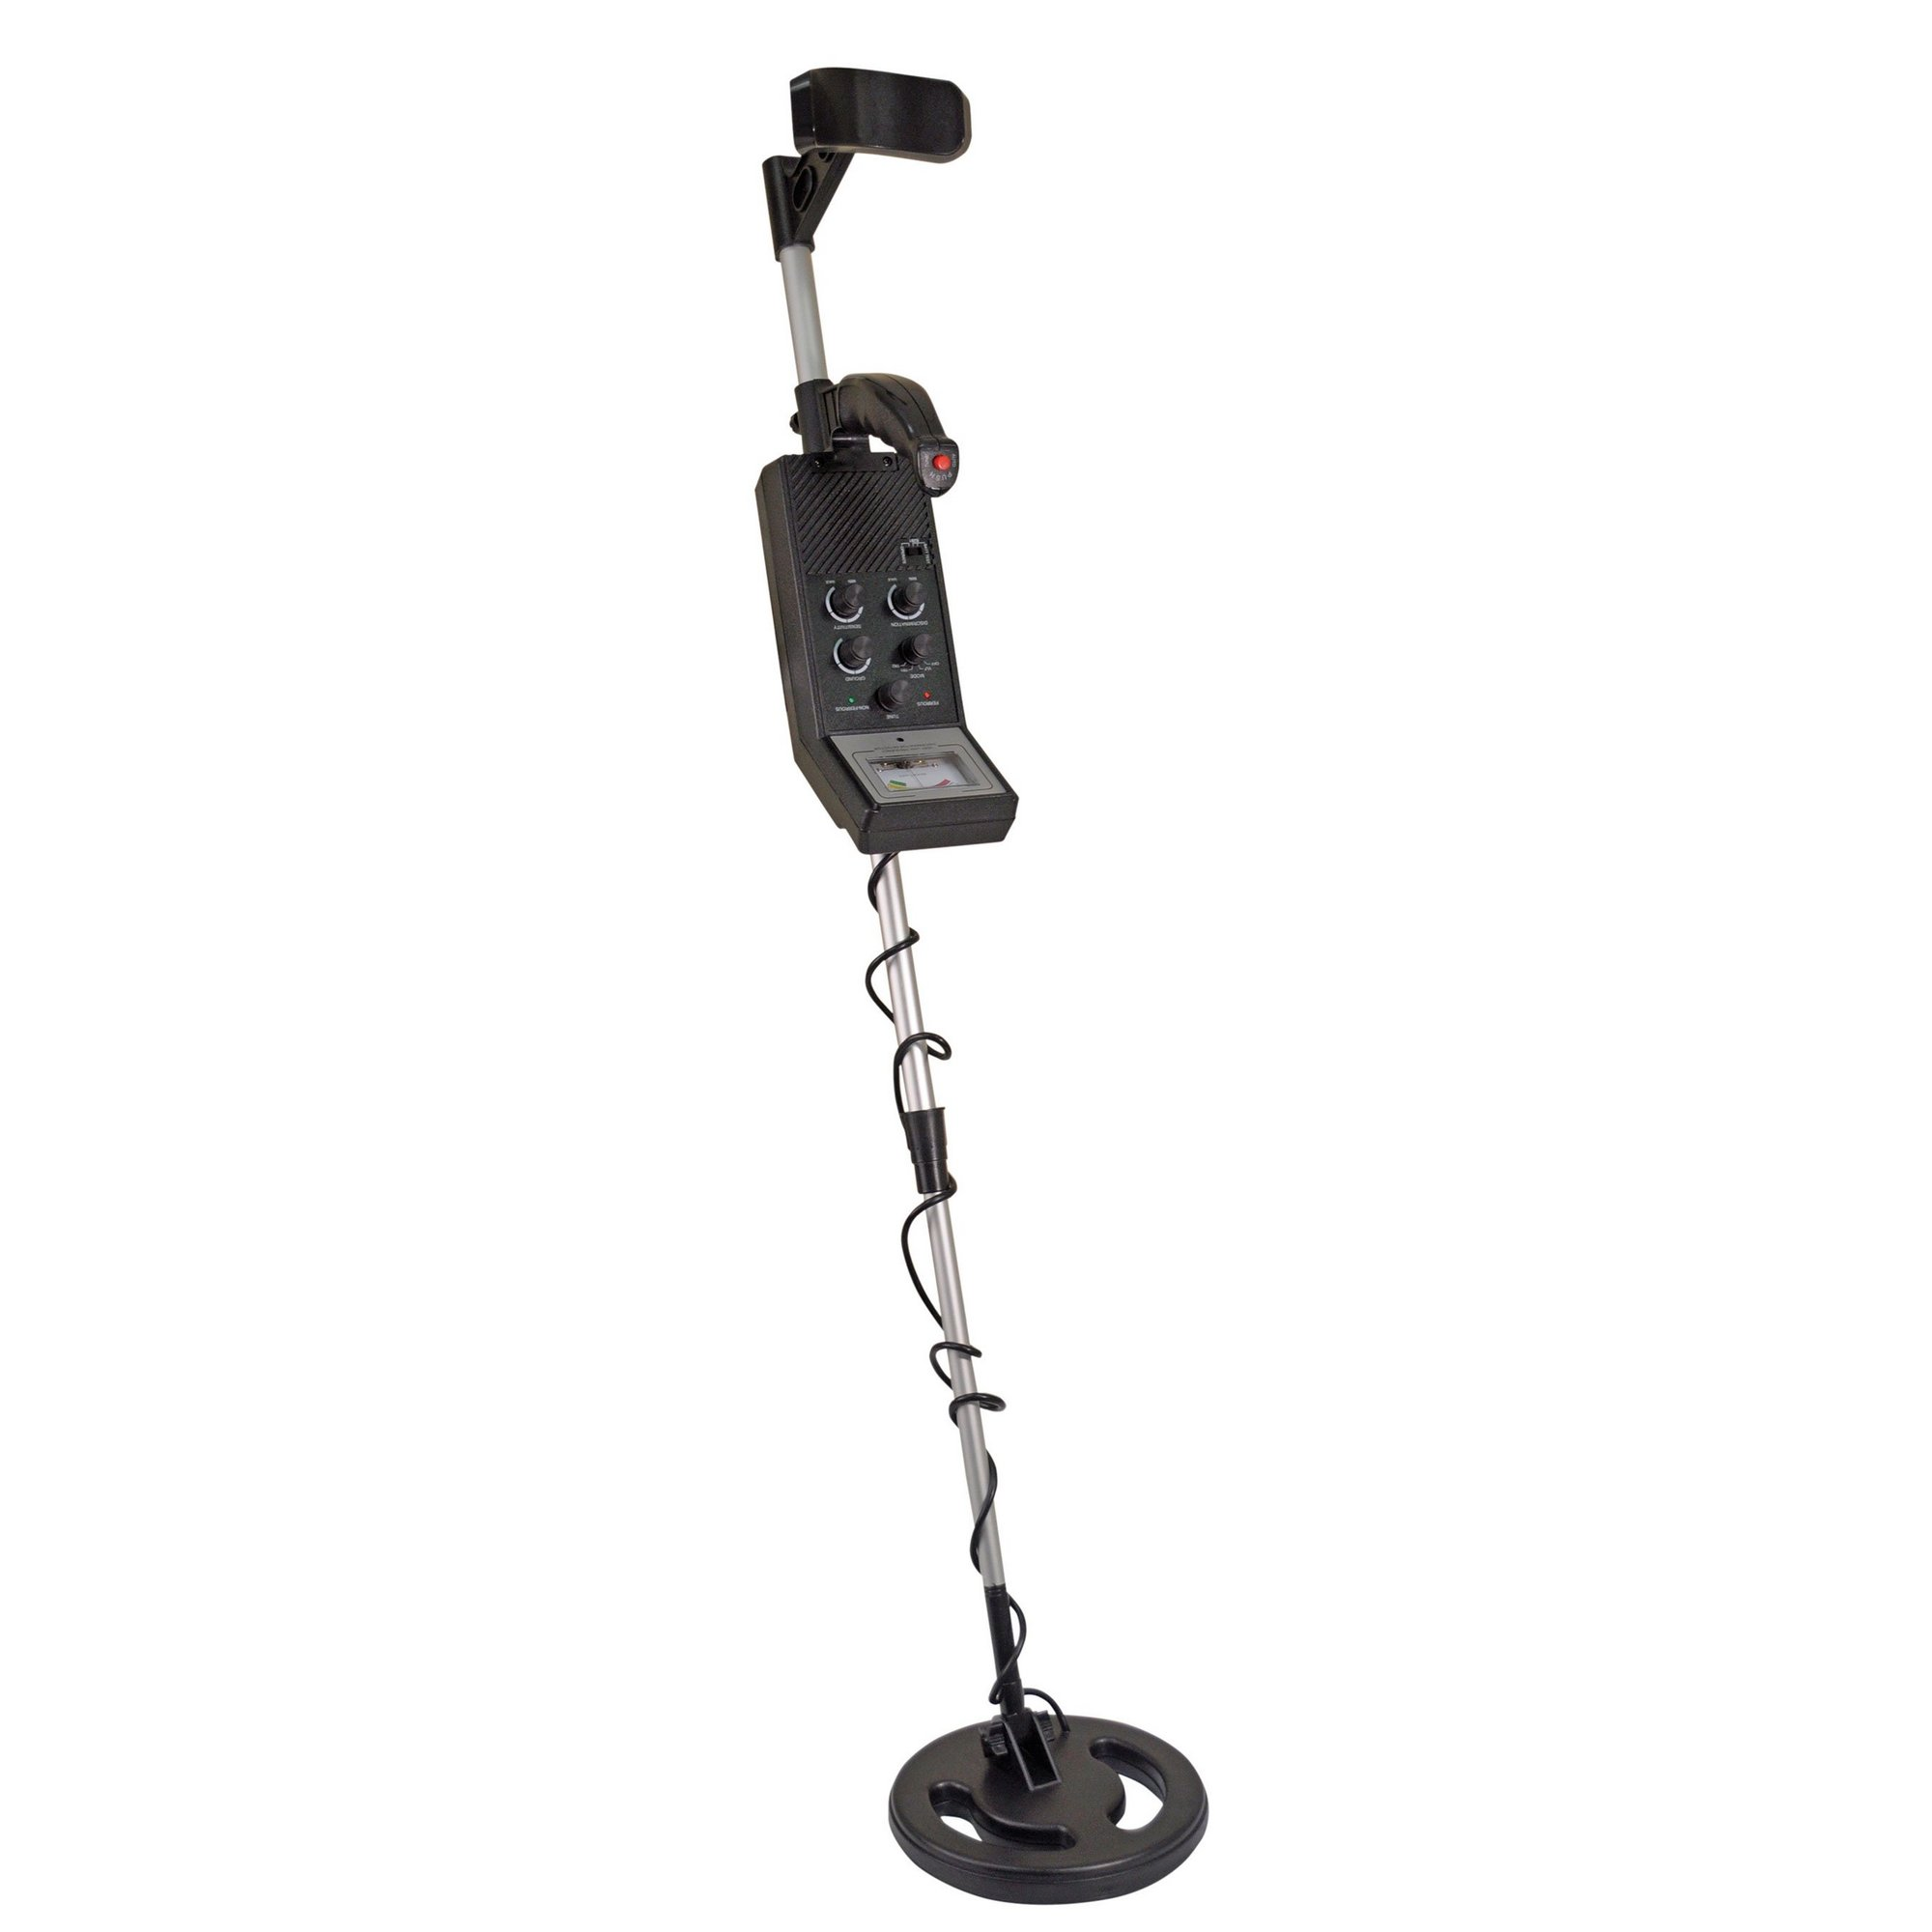 Image of Altai Treasure Seeker 2 Hobby Metal Detector